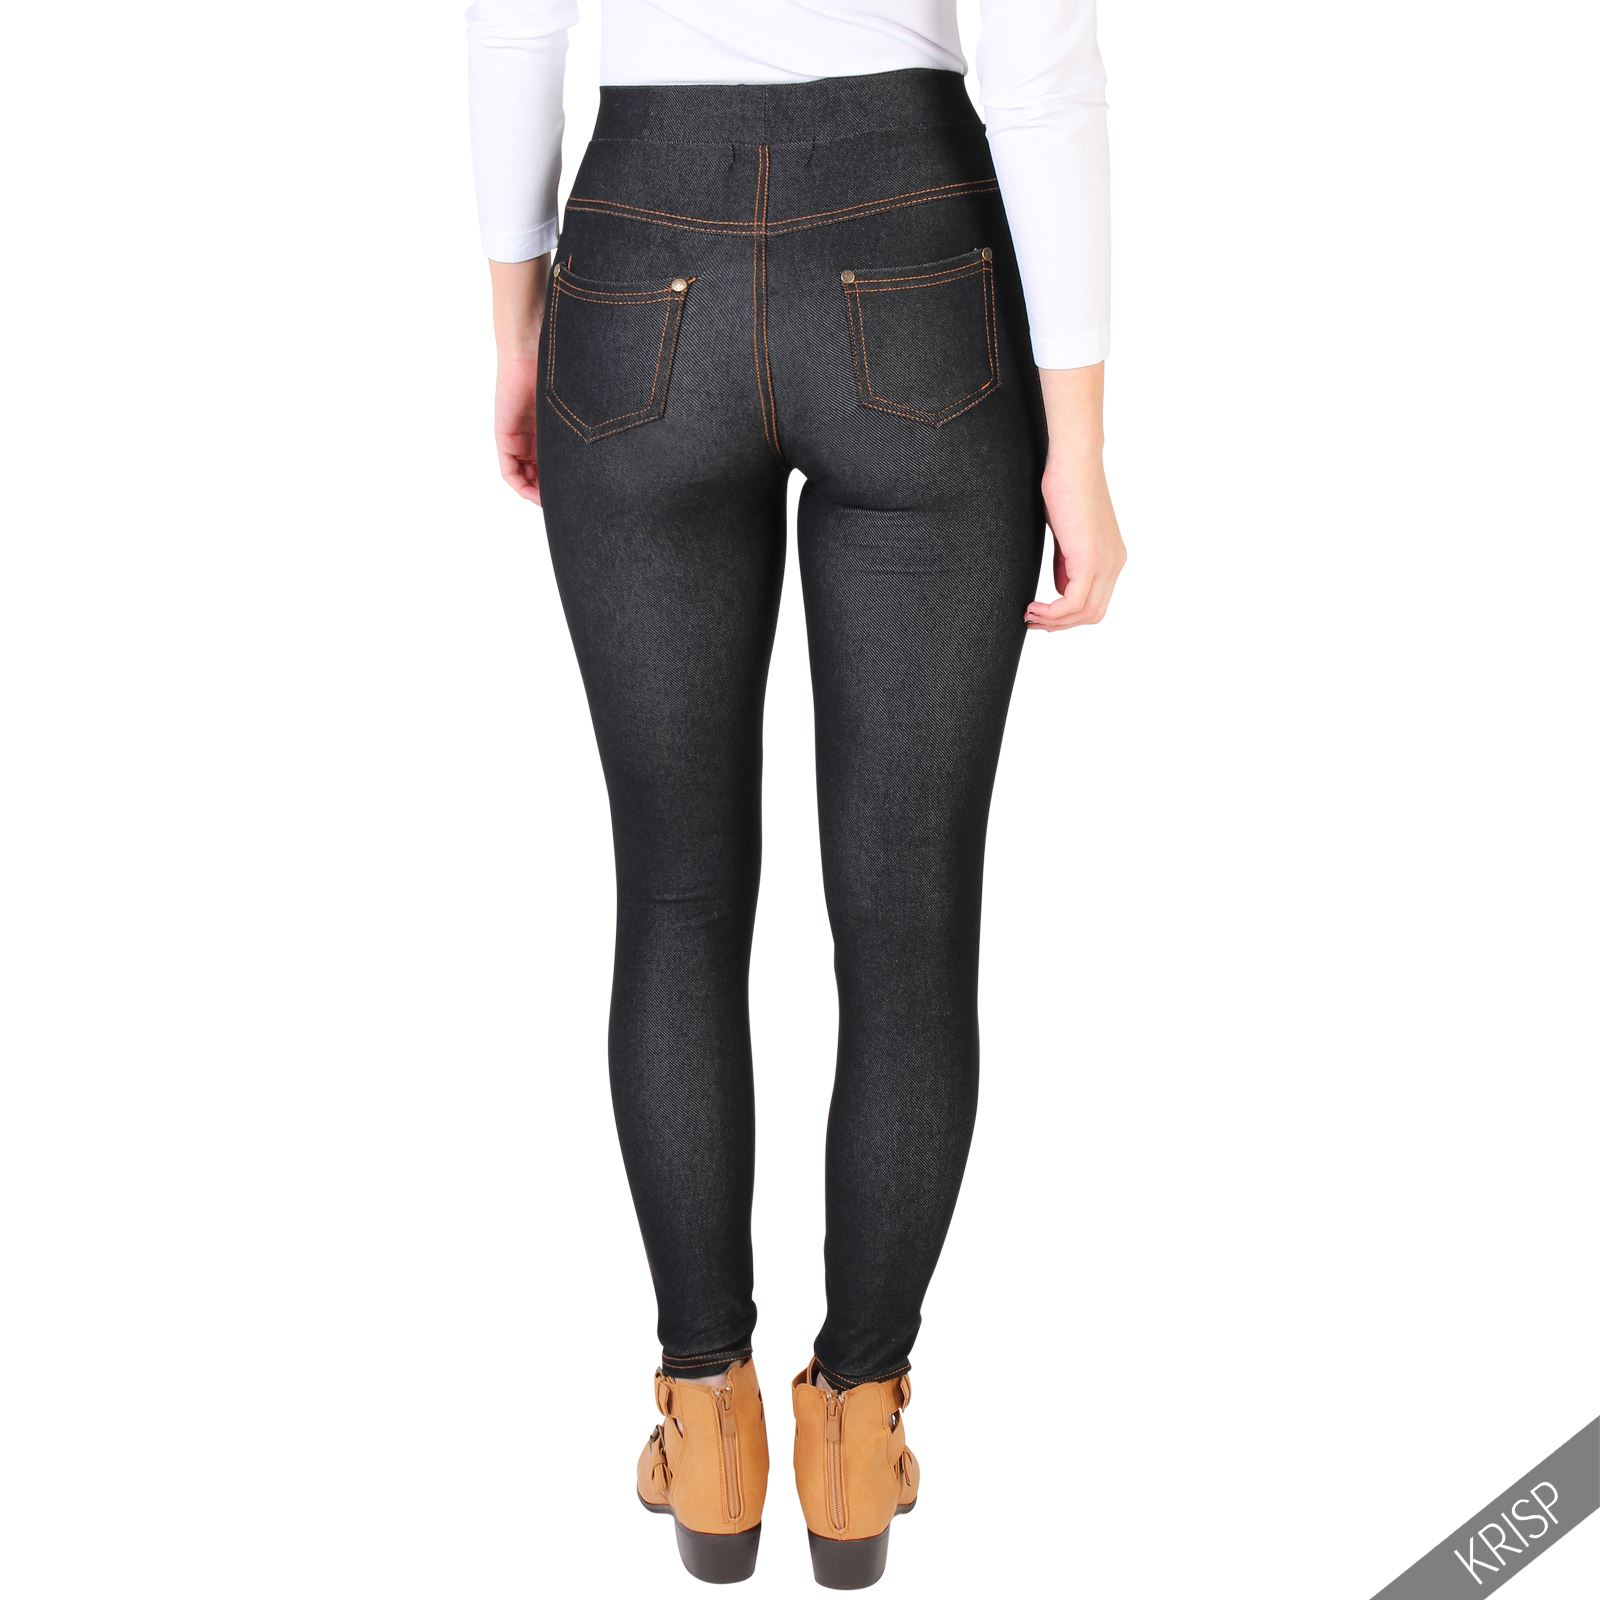 Jeggings, the most form-fitting of all our jeans, are a trendy choice that work well with dressy going-out tops and heels. Despite being very fitted from waist to ankle, they offer lots of stretch for a comfy fit.